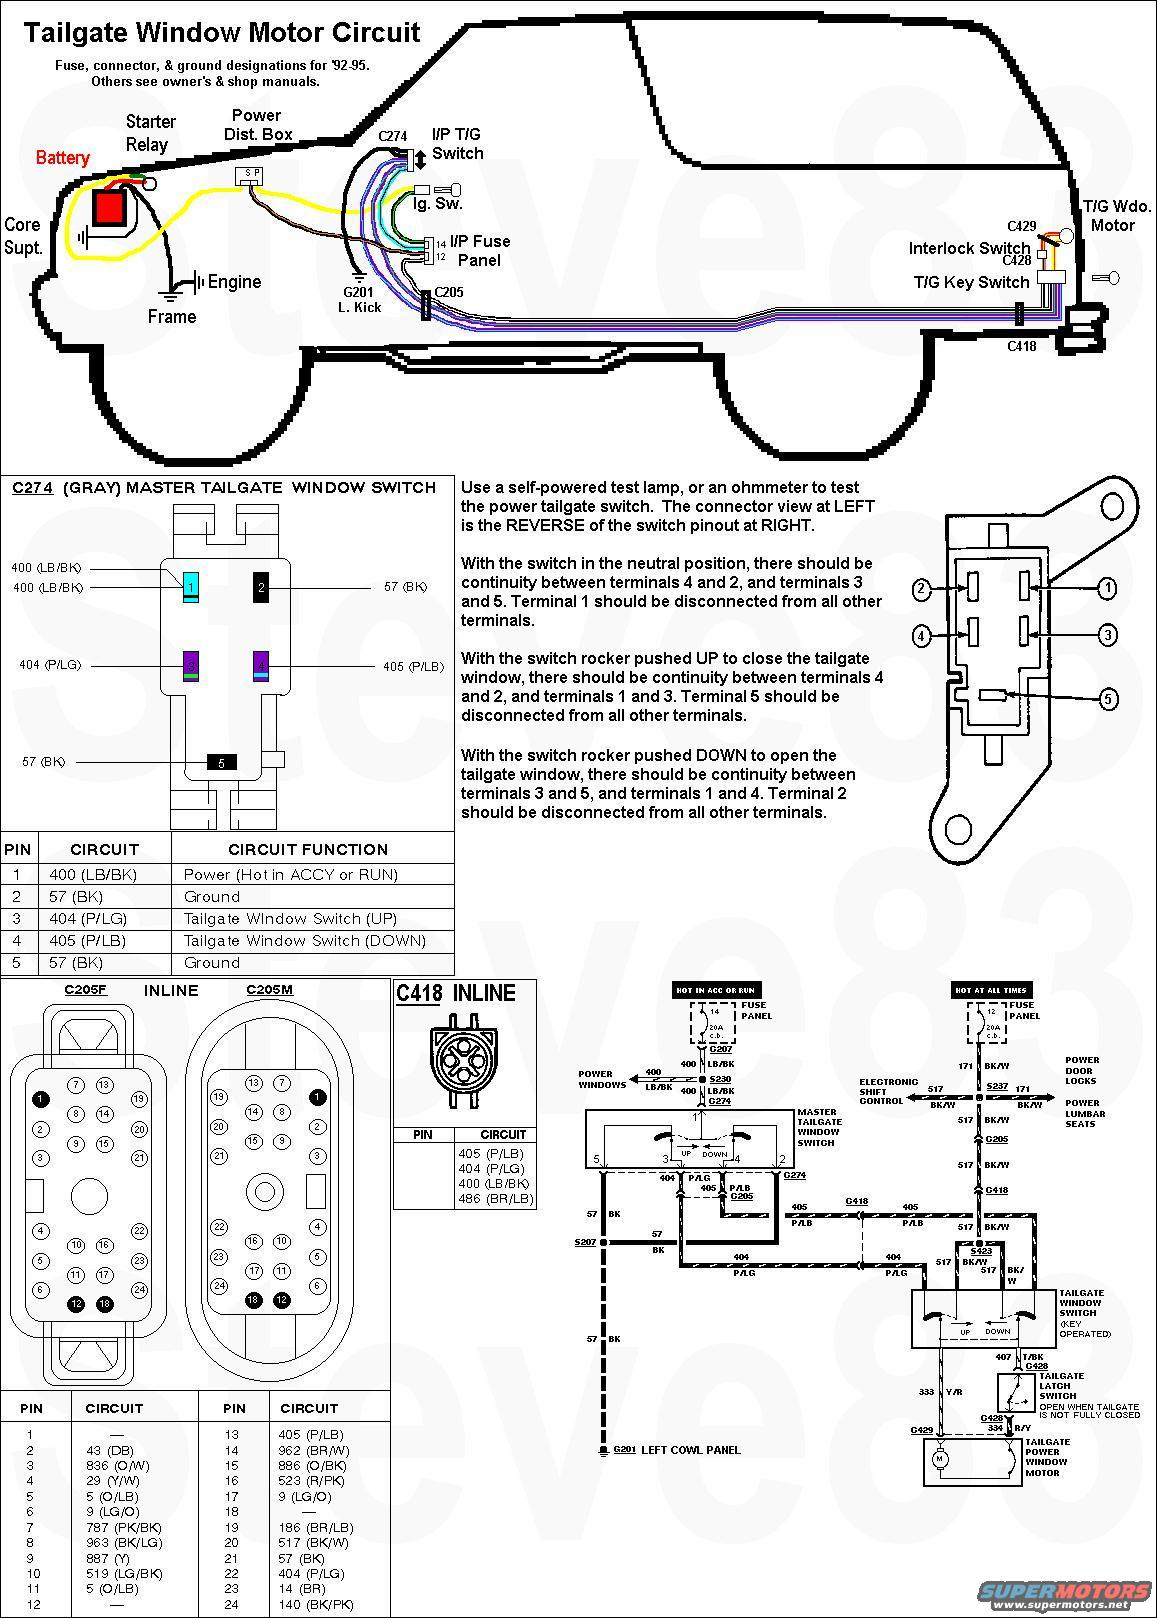 tailgate diagram wiring diagram for 1974 ford bronco the wiring diagram Ford F-250 Wiring Diagram at pacquiaovsvargaslive.co